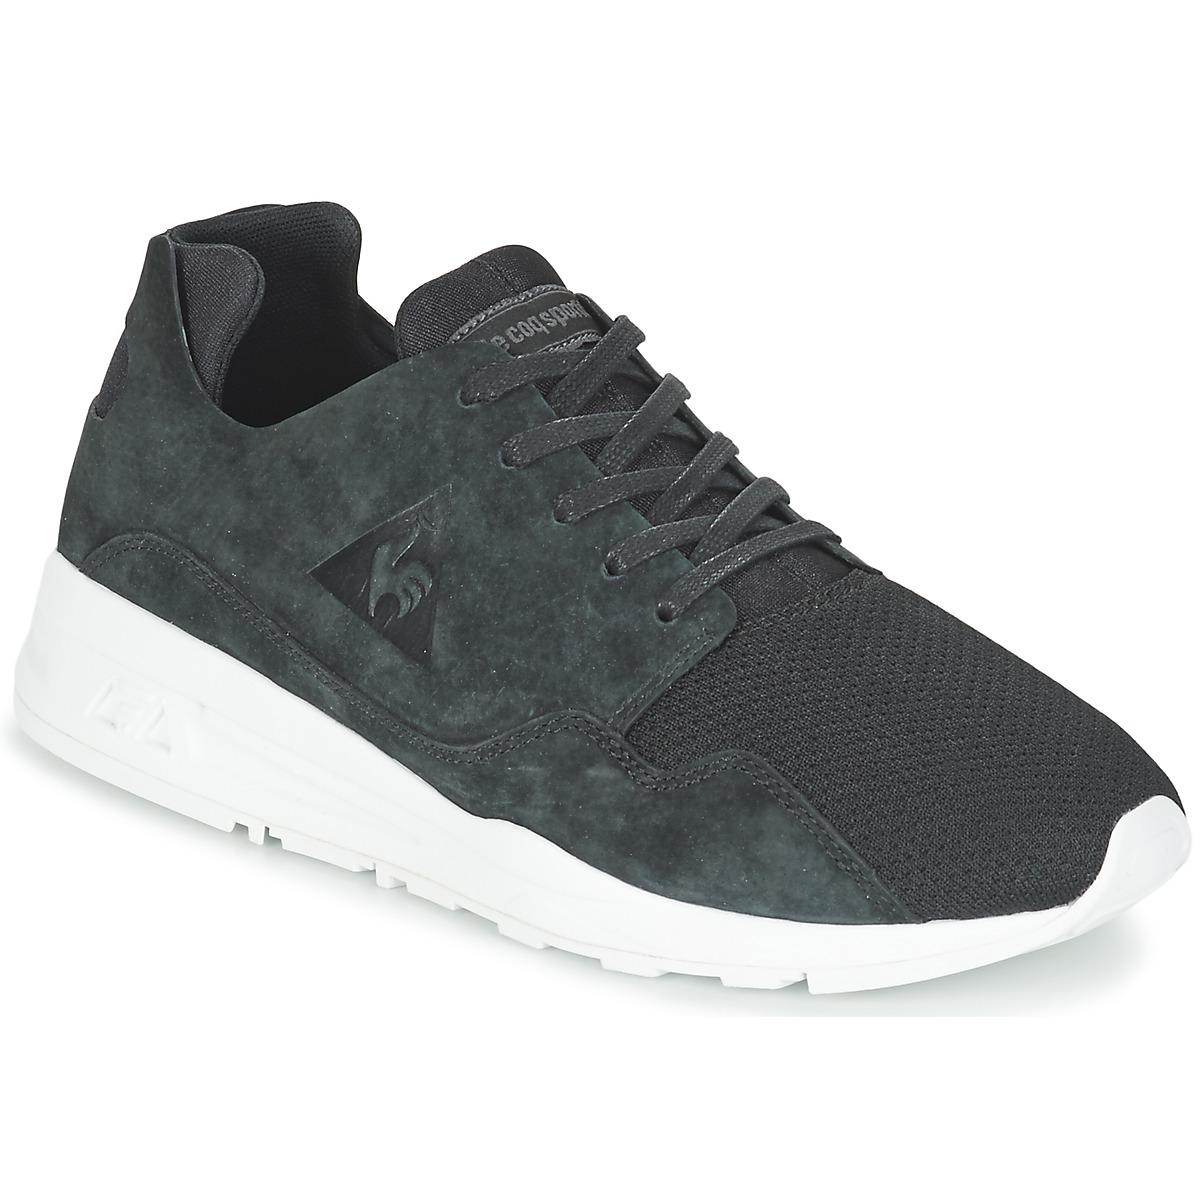 53f1be2c2e01 Le Coq Sportif Lcs R Pure Mono Luxe Shoes (trainers) in Black for ...